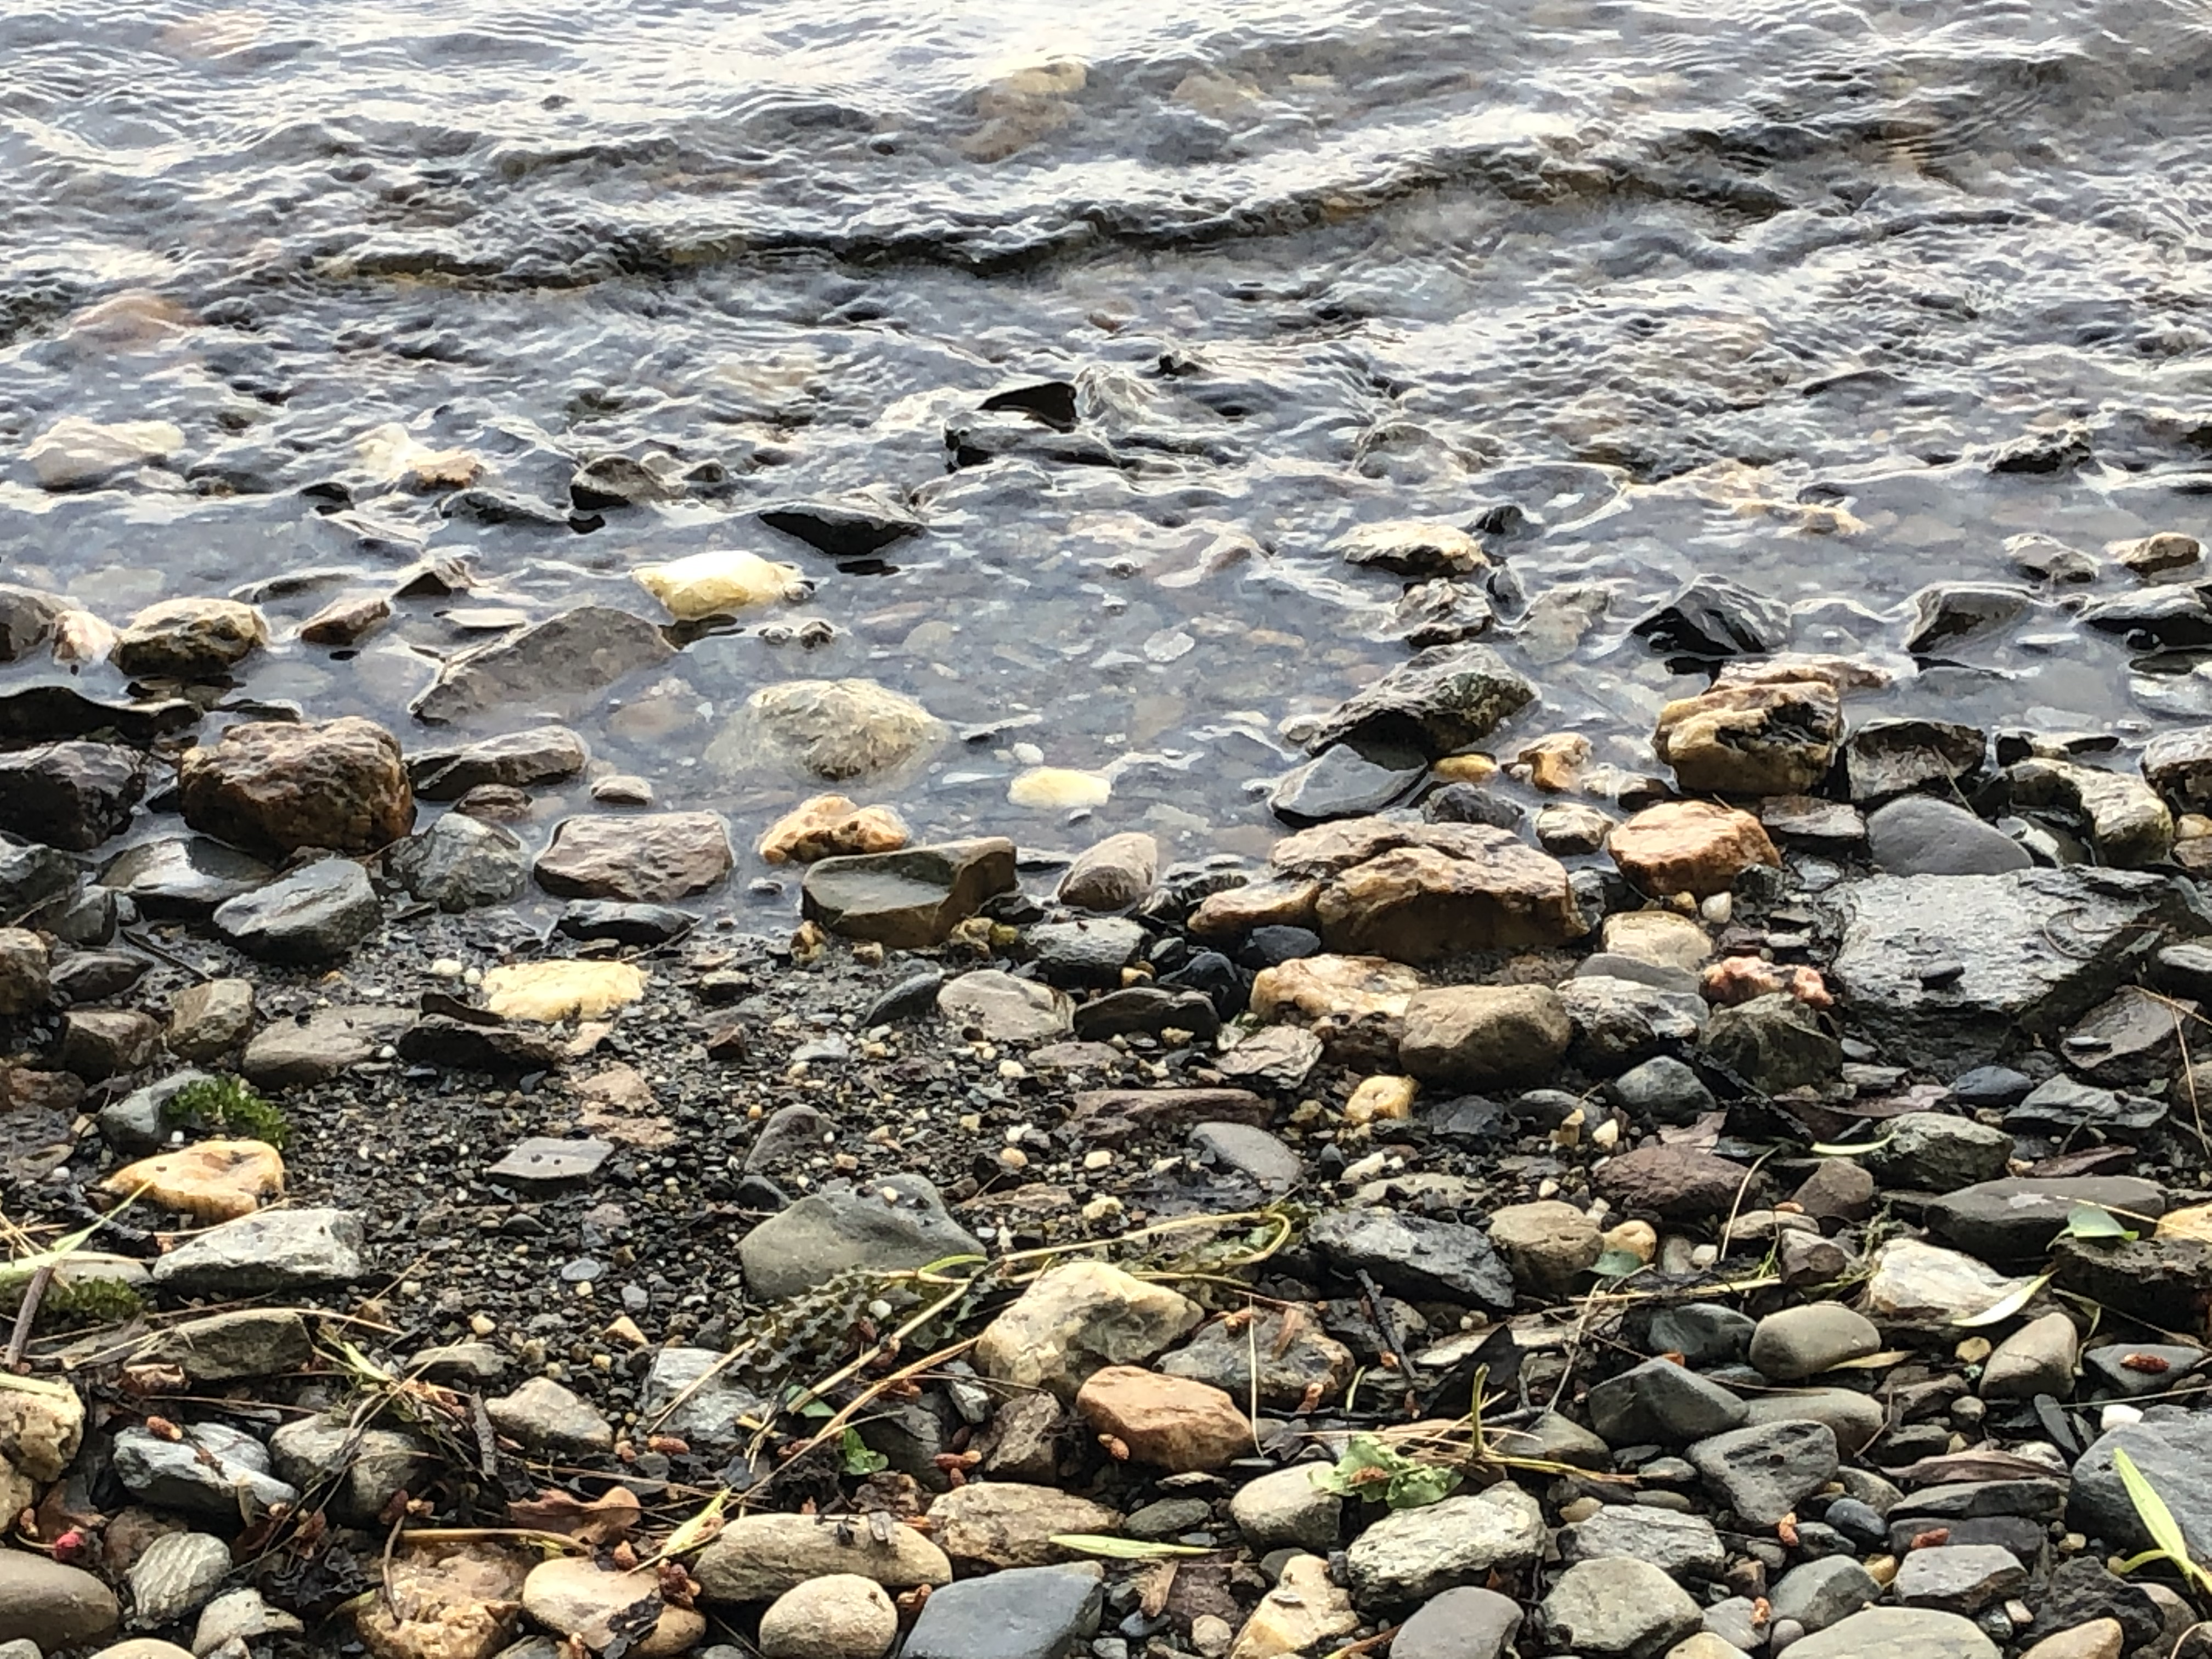 lake water crawling over pebbles on the shore